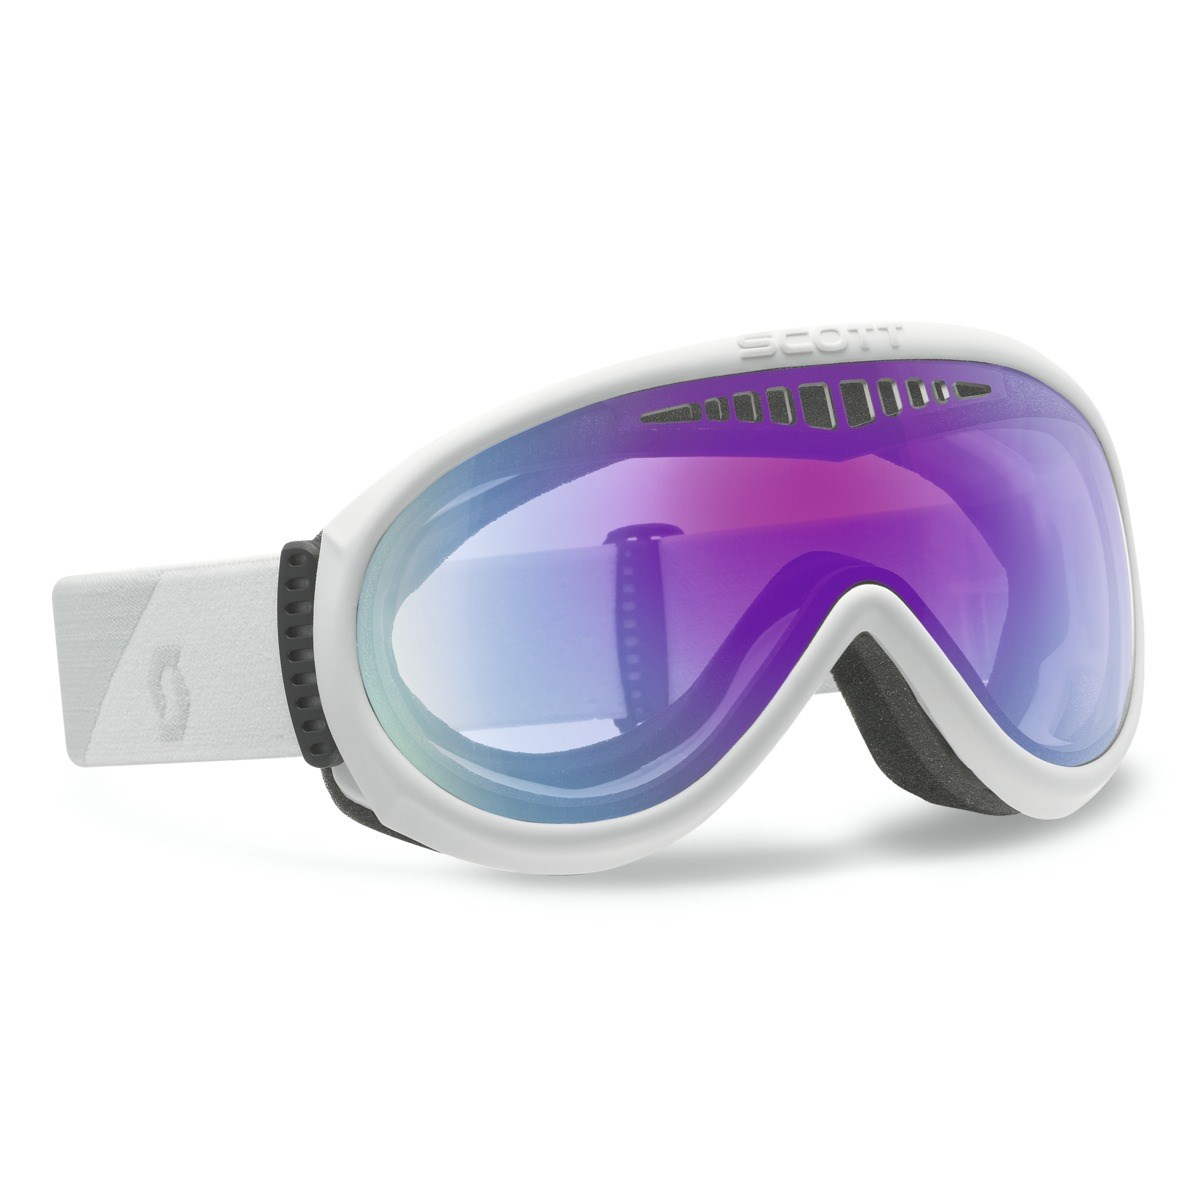 c9b5b2be086 Scott Unlimited OTG Ski Goggles White Illuminator Lens. 0 (Be the first to  add a review!)